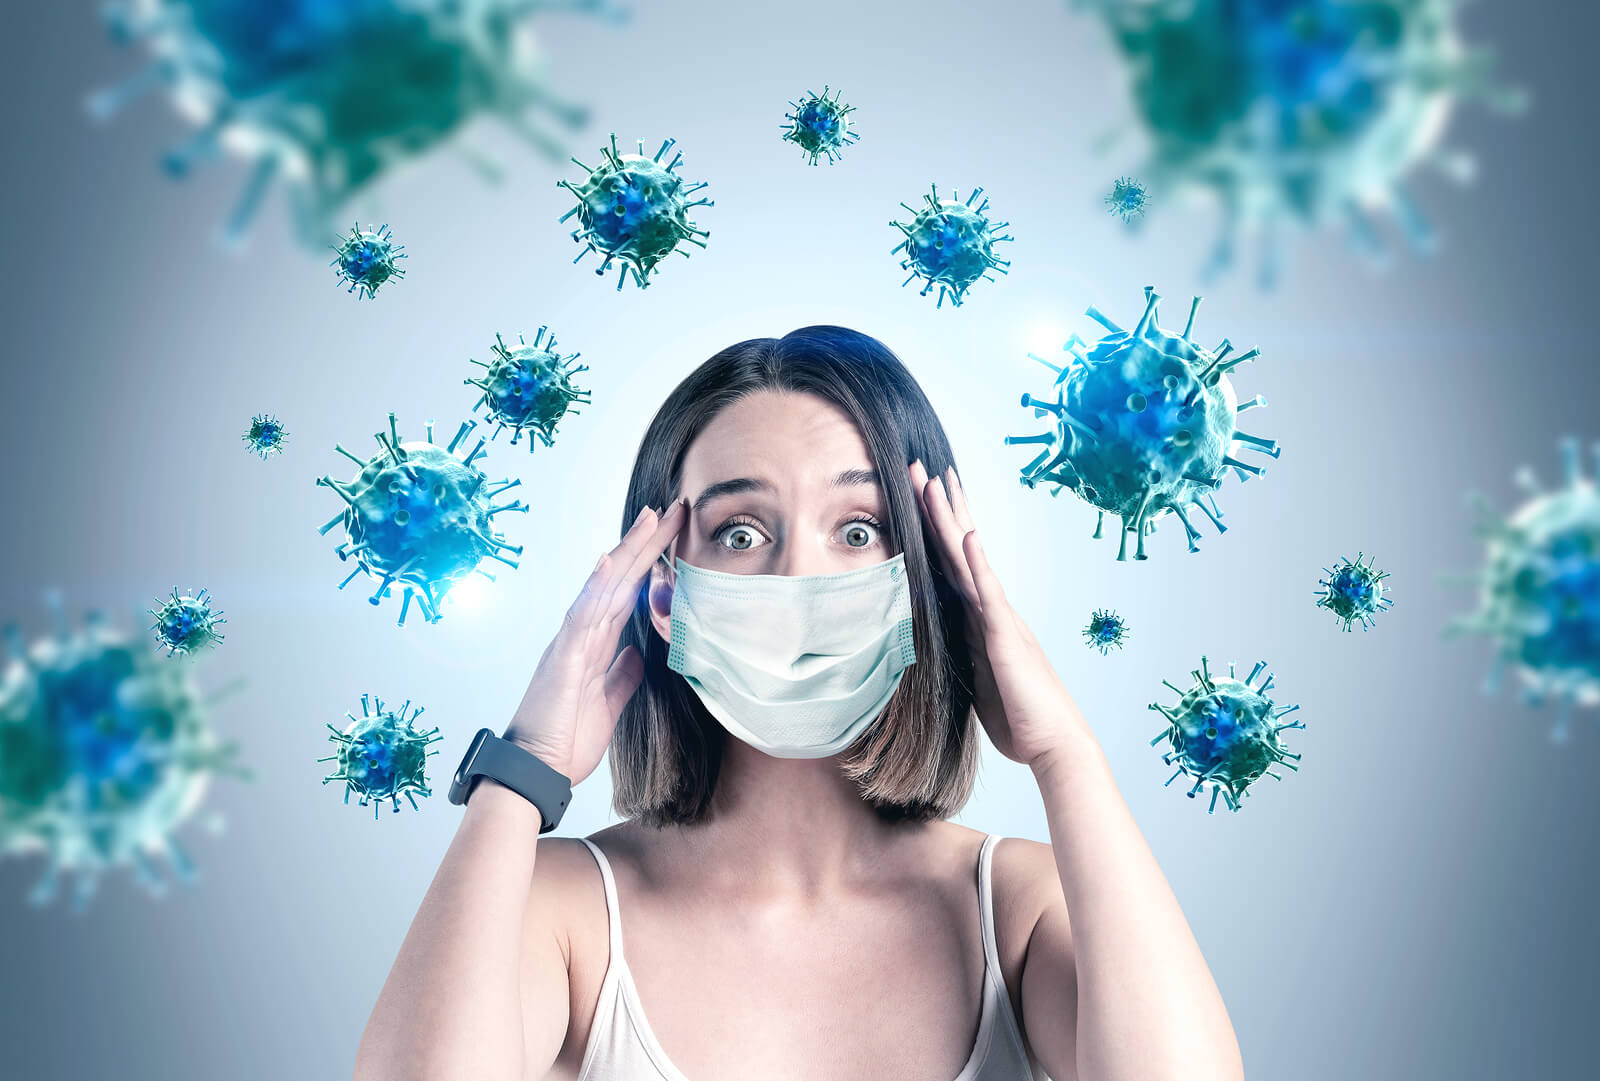 Scared young woman in medical mask standing over gray background with blurry red virus molecules. Coronavirus or COVID has an effect on postpartum in a pandemic. You can get birth trauma therapy or postpartum depression counseling in Cranford, NJ. Scotch Plains and Westfield, New Jersey 07076